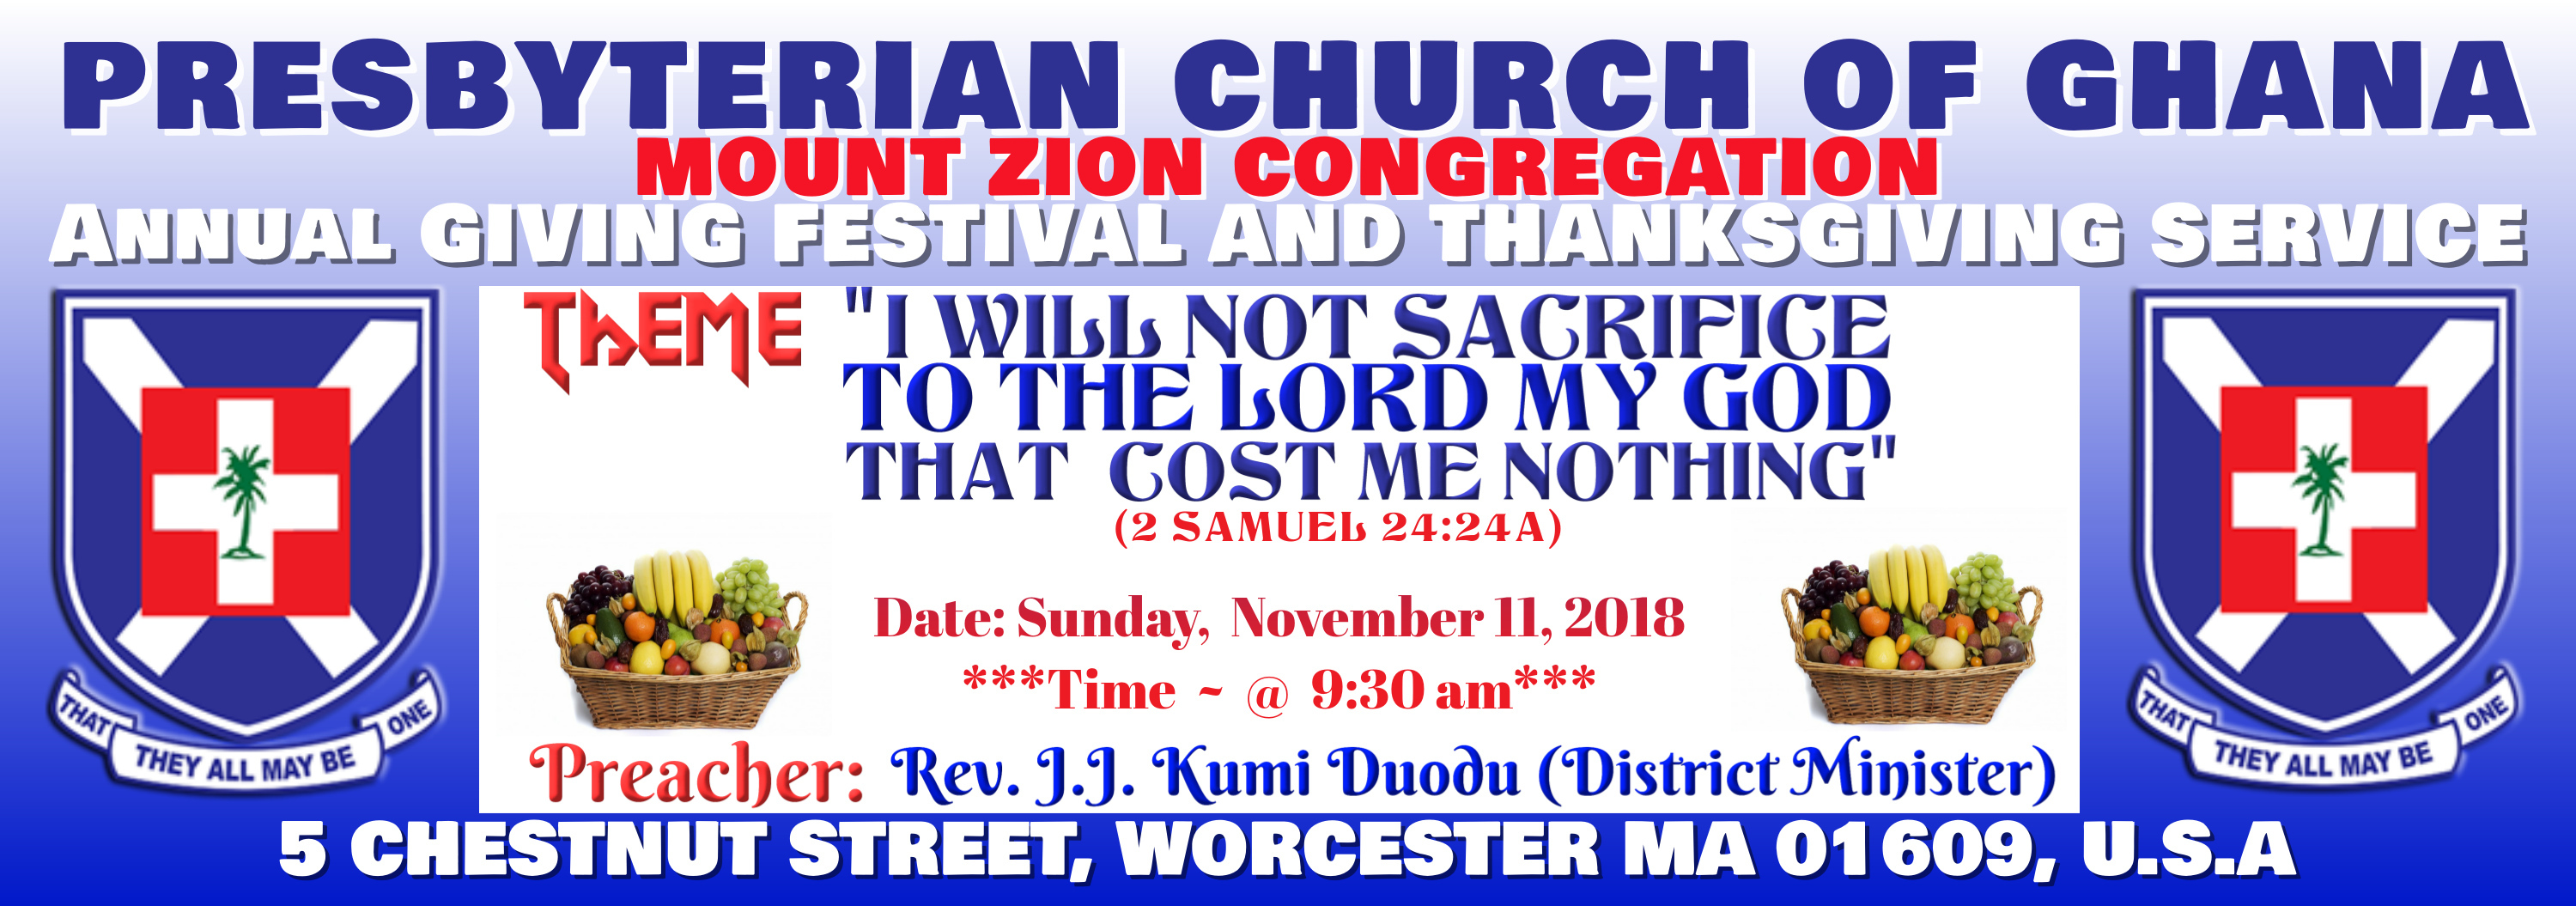 Annual Giving and Thanksgiving Service @ Mount Zion Congregation